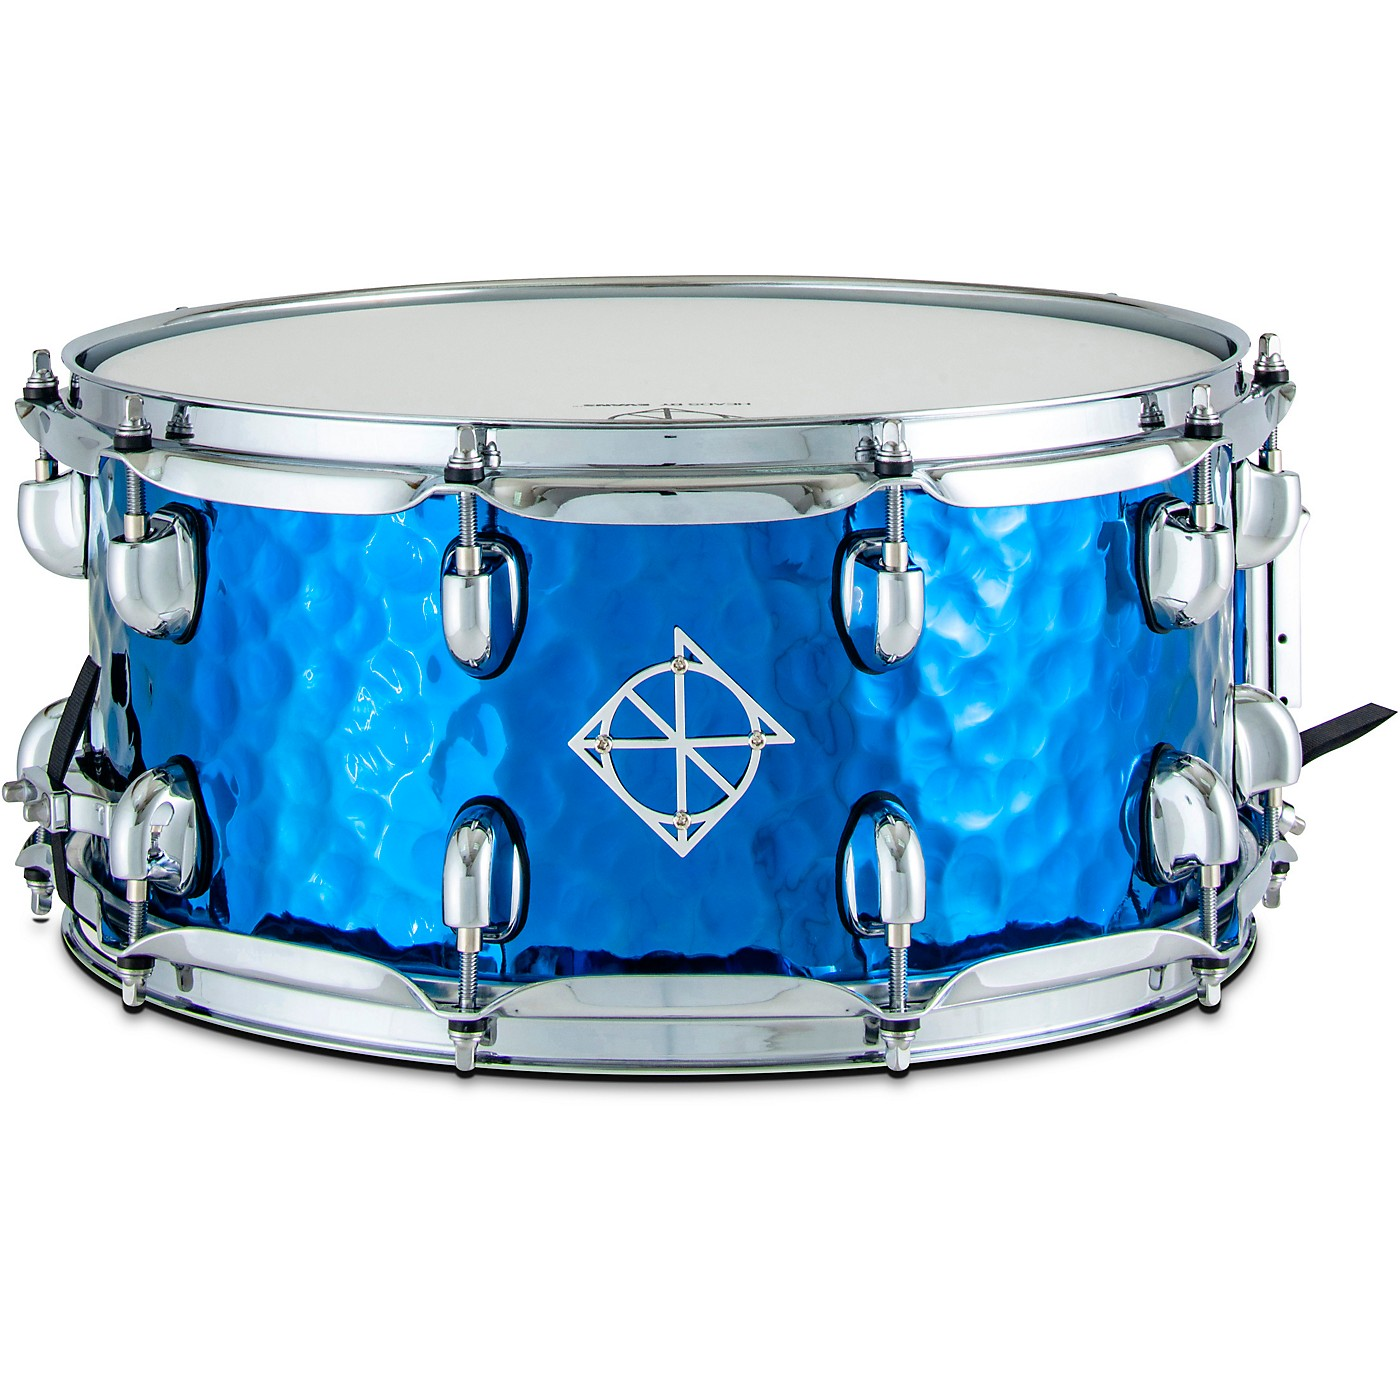 Dixon Cornerstone Titanium Plated Hammered Steel Snare Drum With Bag thumbnail